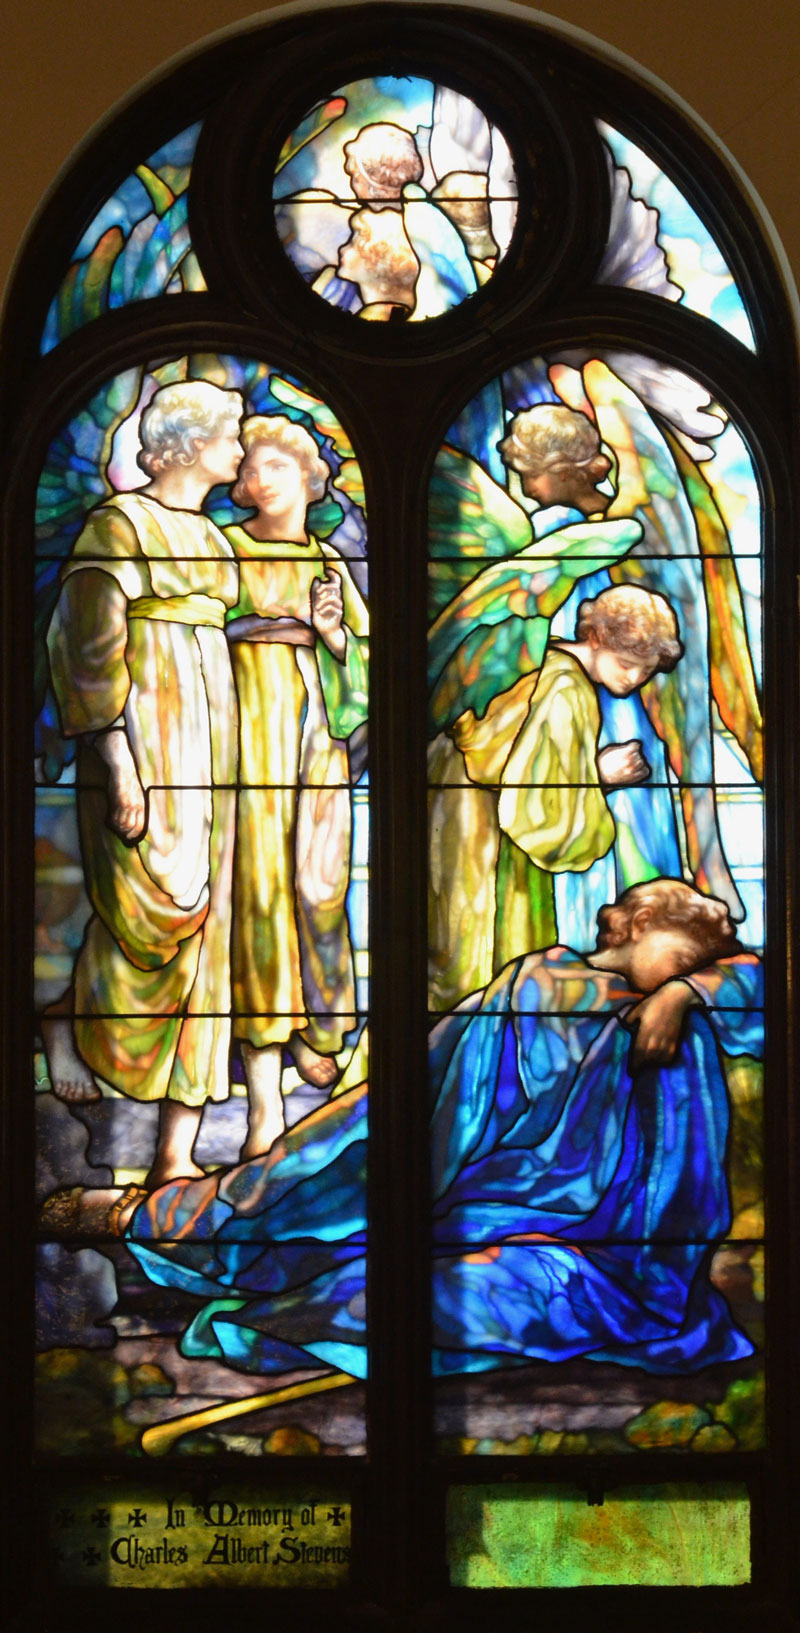 Jacob's Dream by Louis Comfort Tiffany